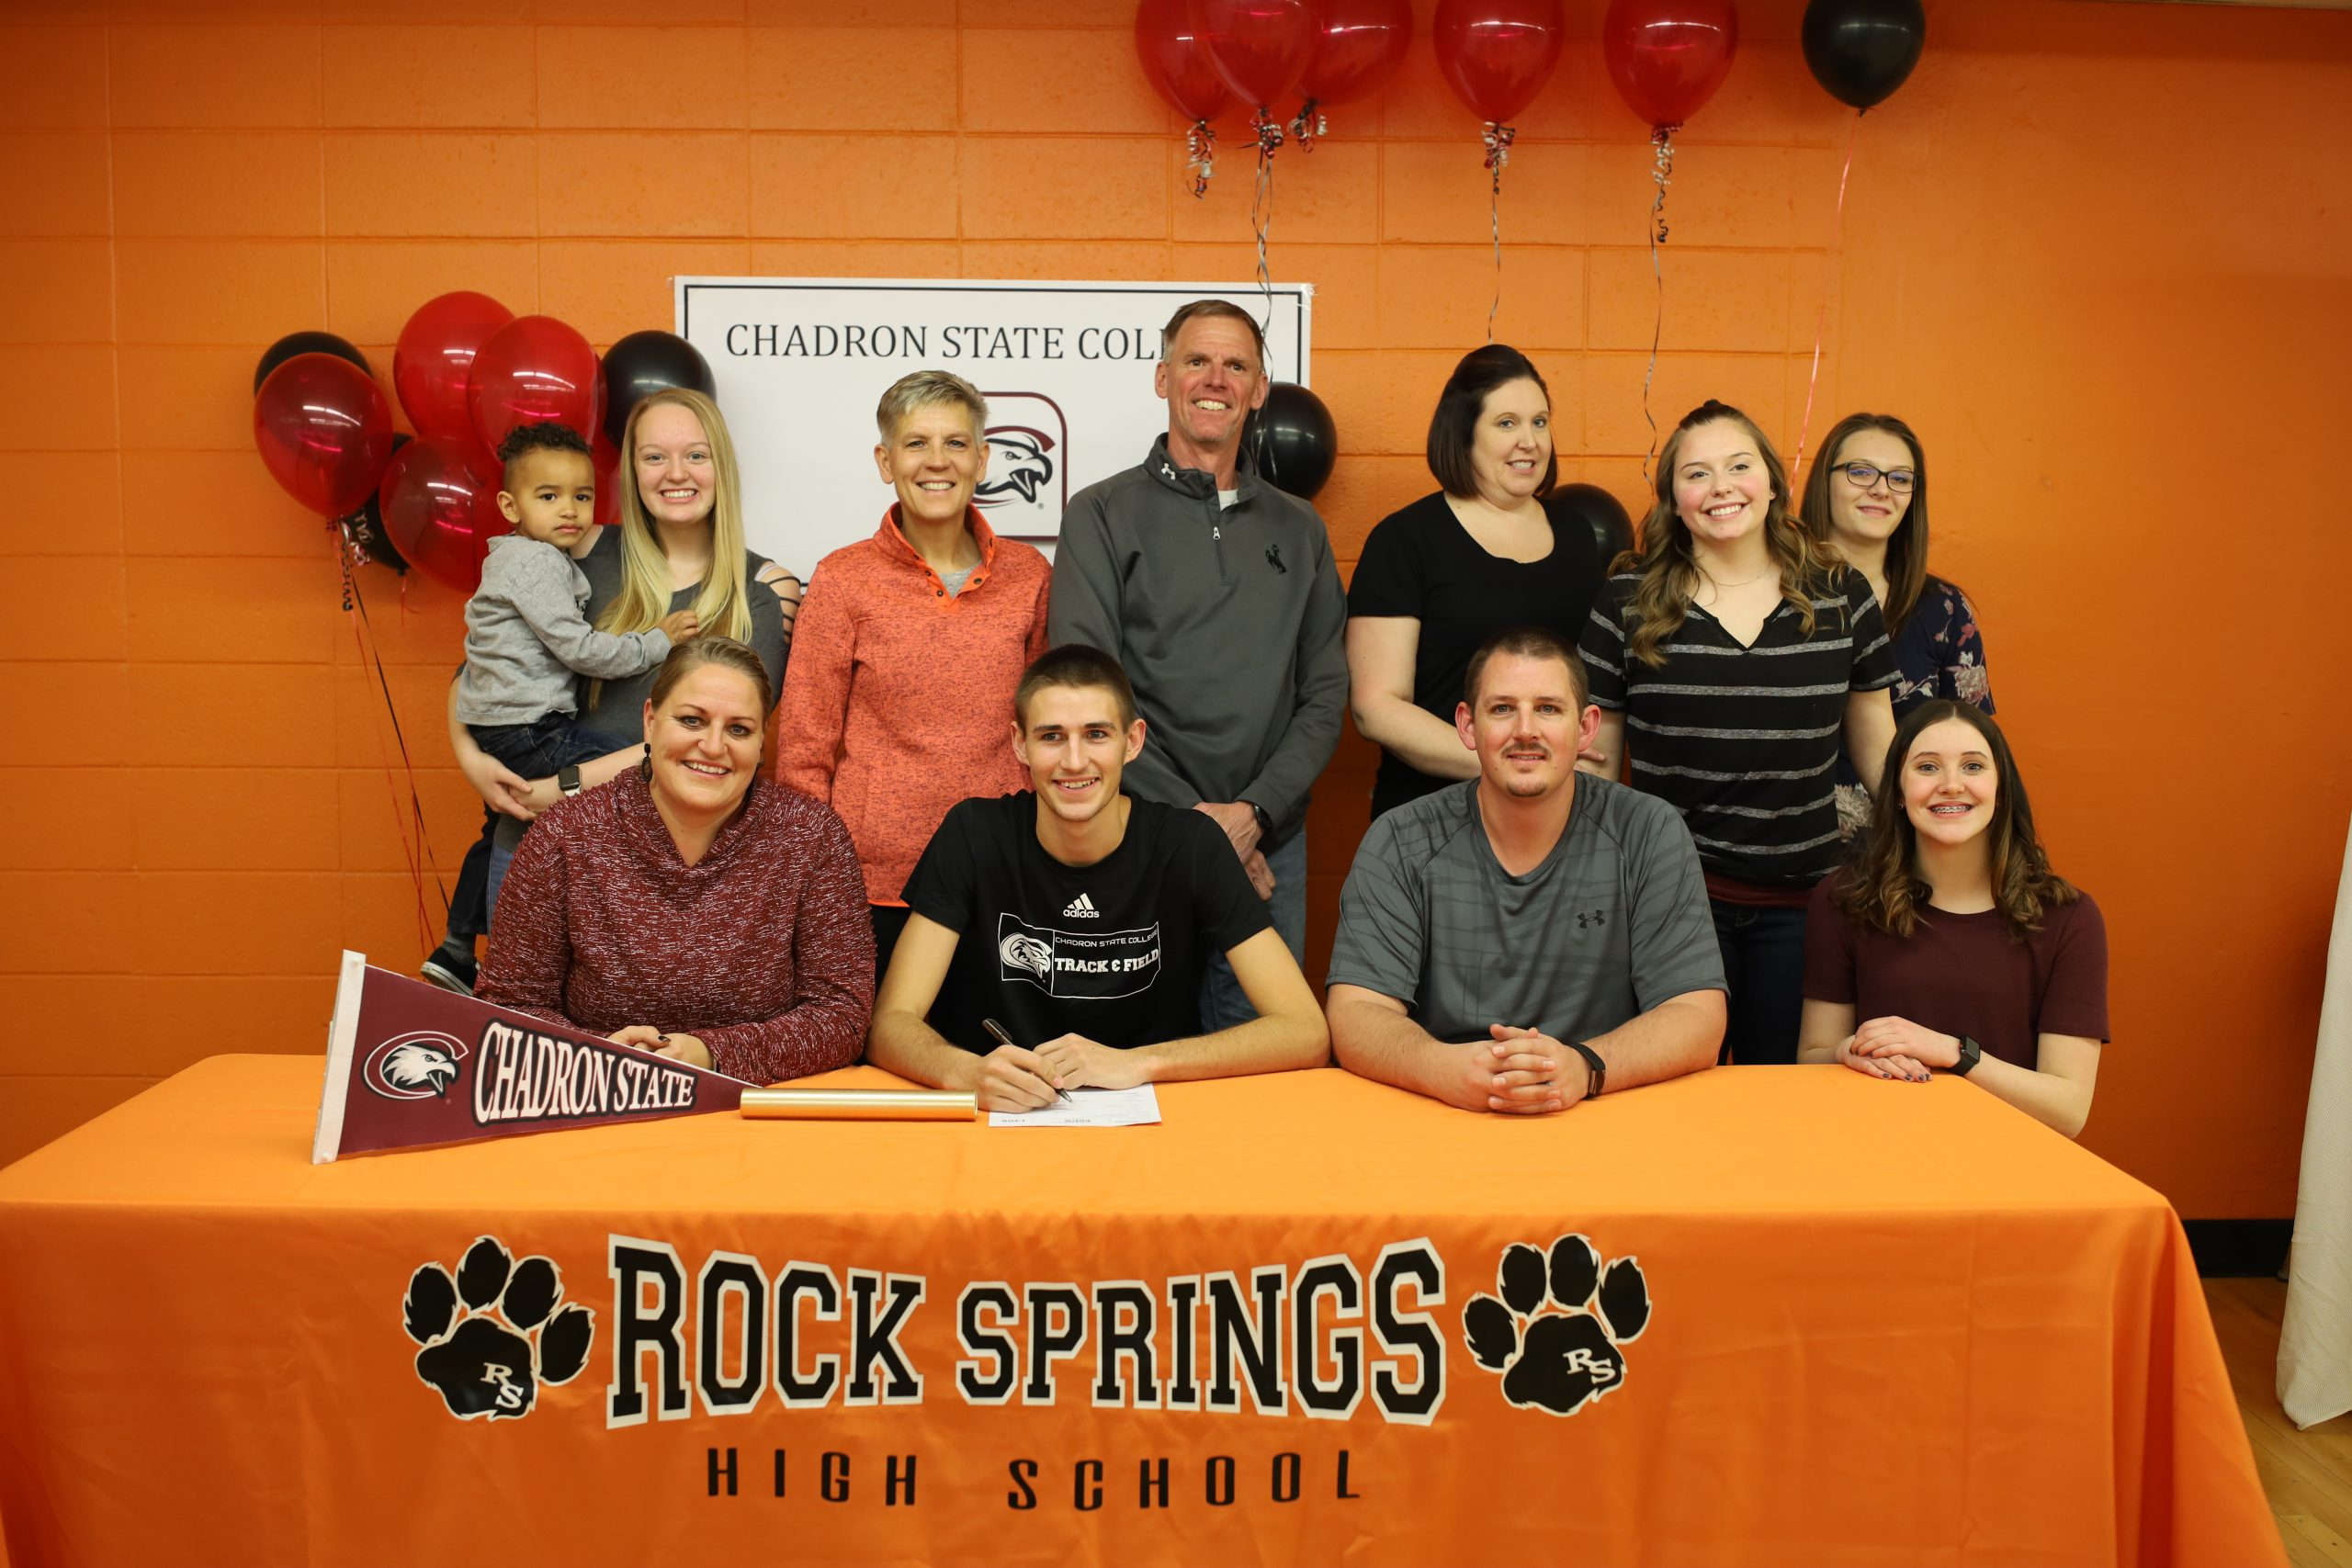 RSHS' Jayson Caudell Signs With Chadron State